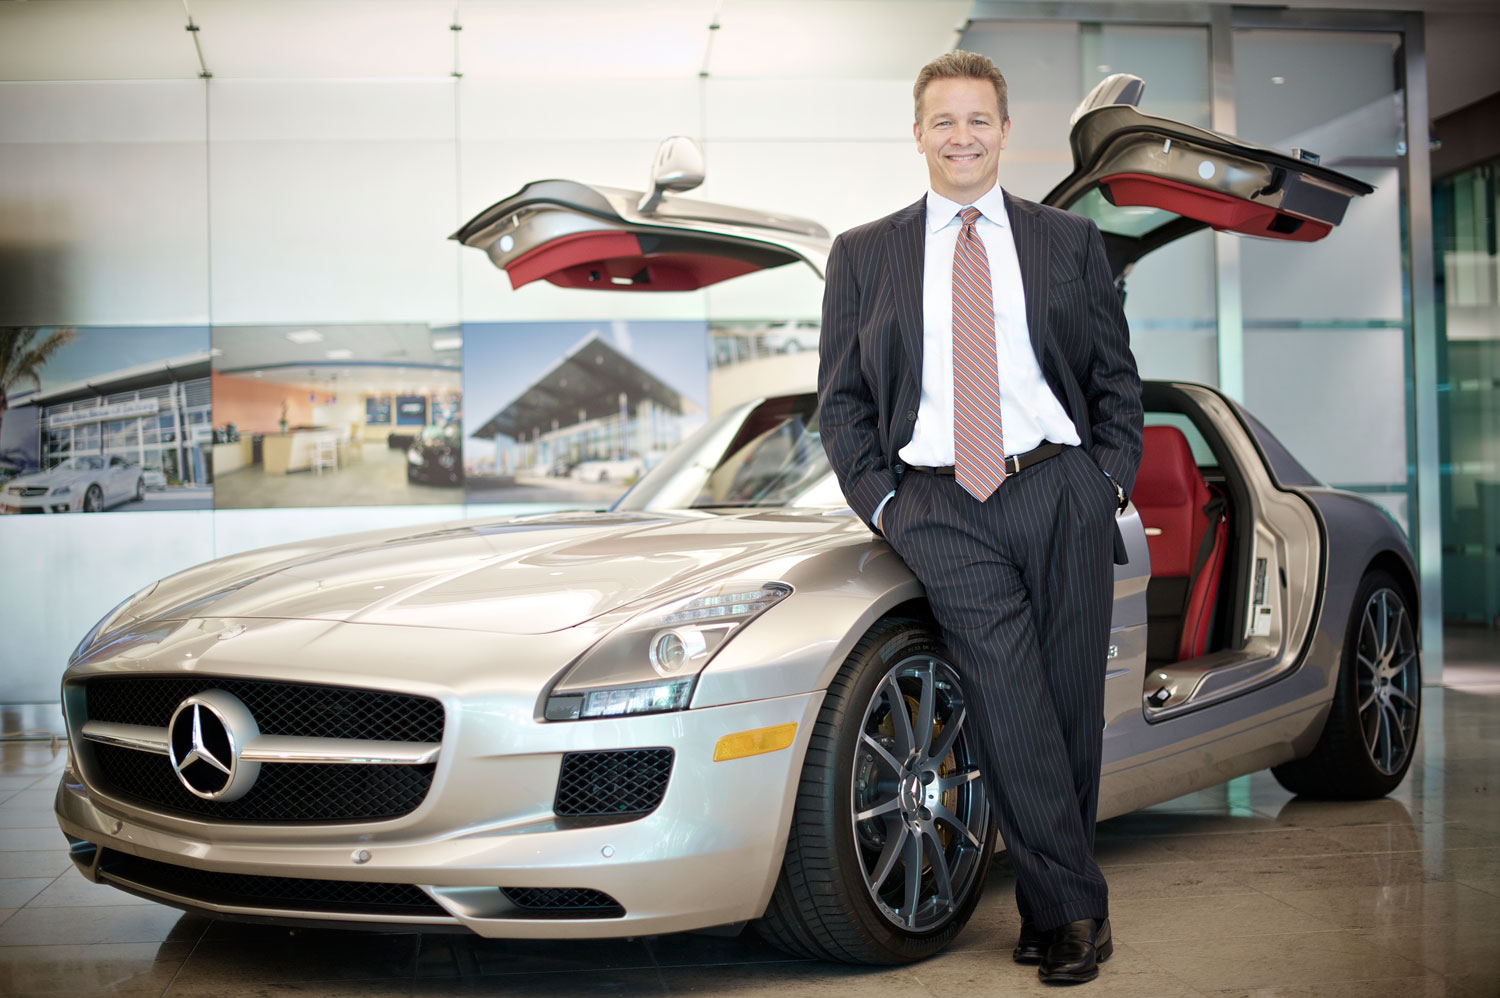 mercedes-benz usa promotes marketing chief cannon to ceo - motortrend